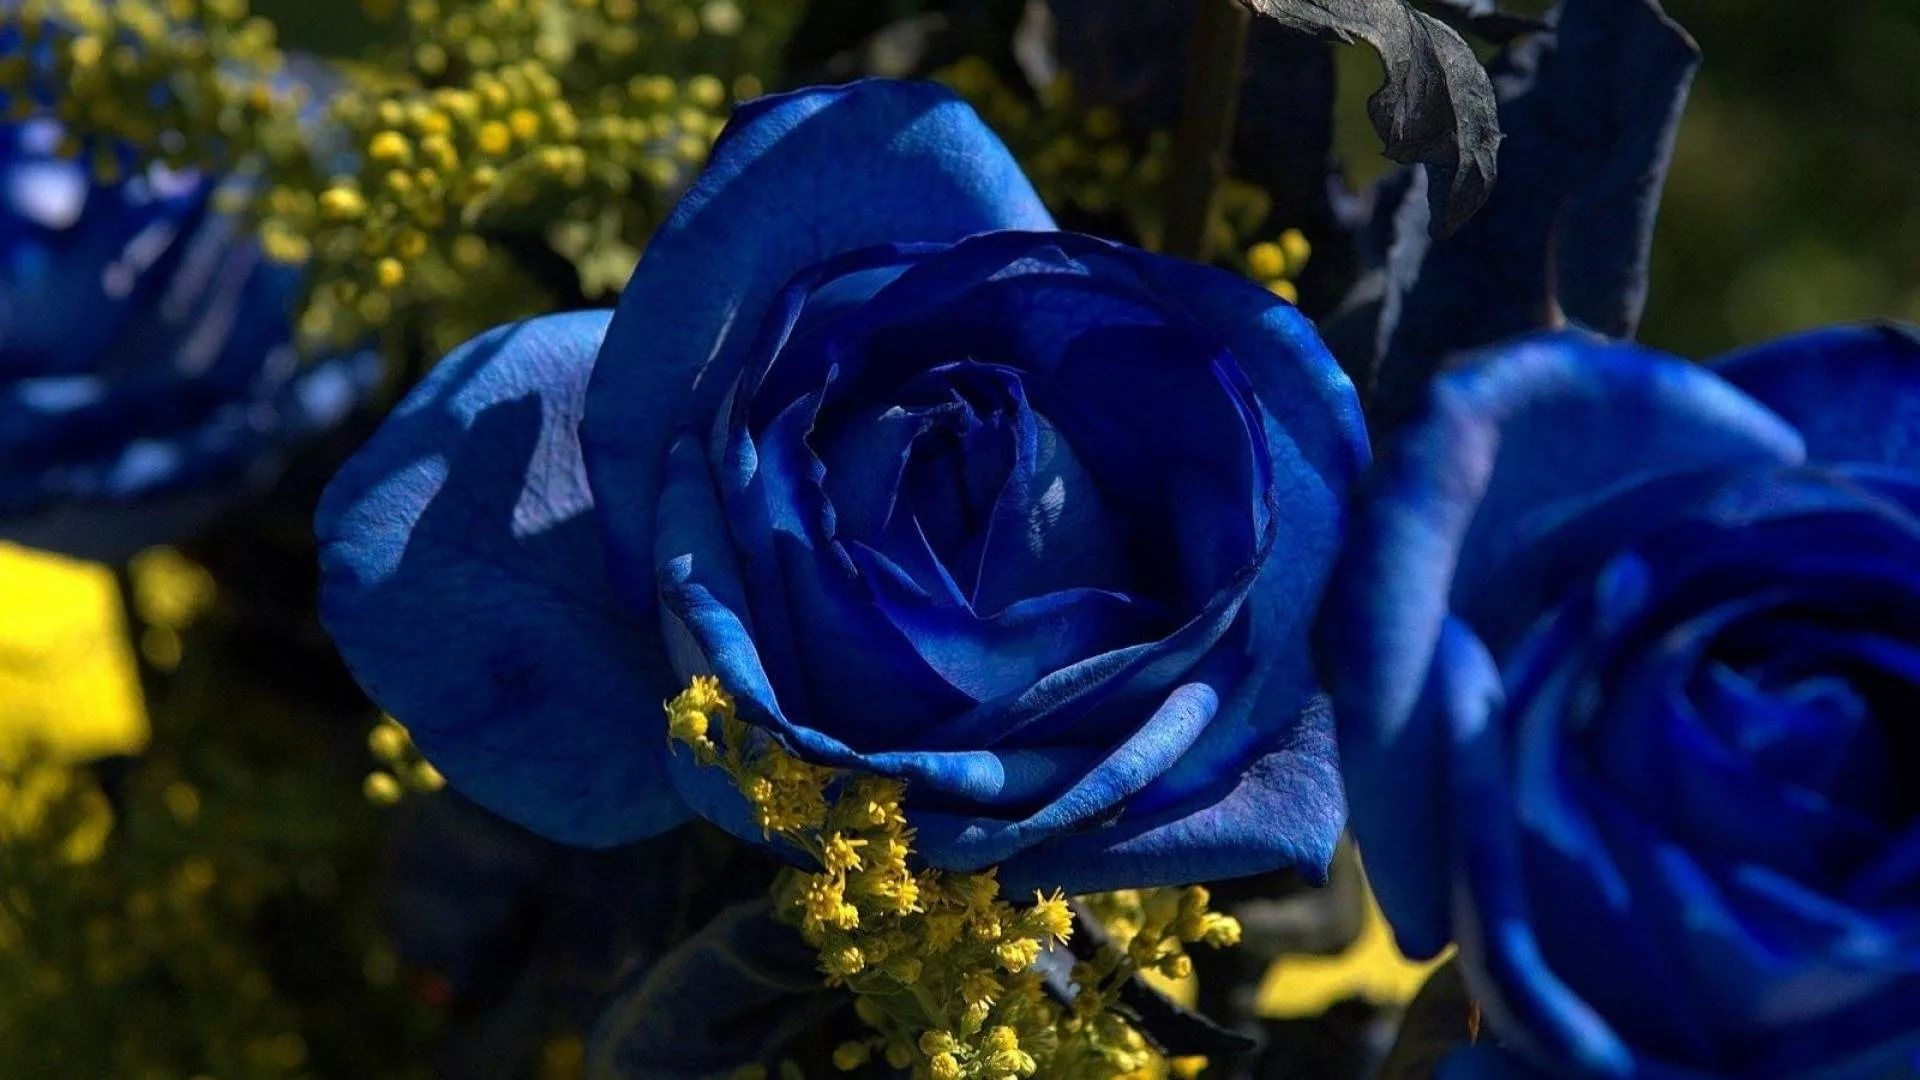 Blue Rose full screen hd wallpaper